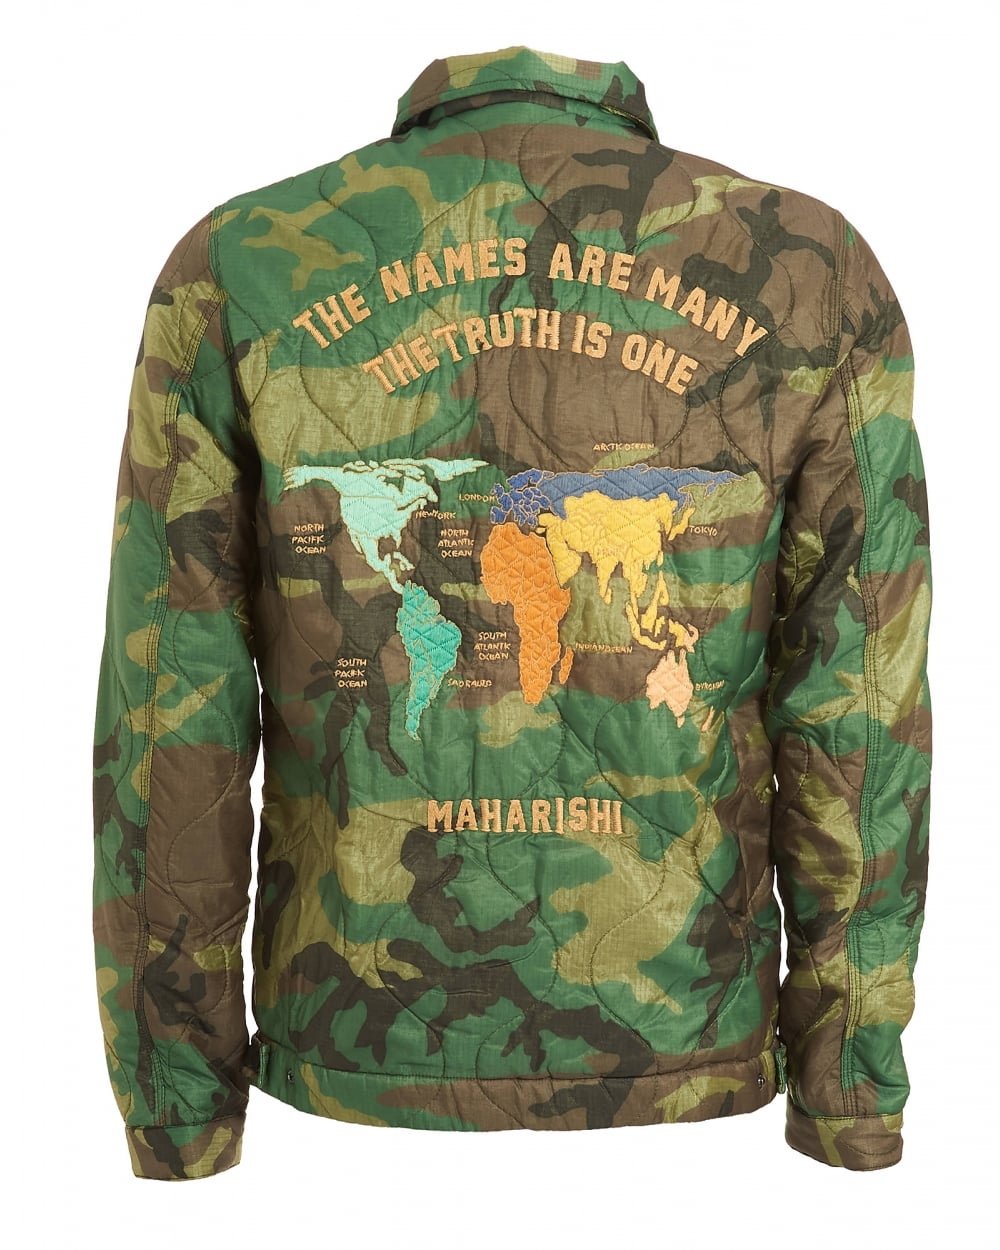 Maharishi mens world map jacket military surplus woodland green coat mens world map jacket vintage military surplus woodland green coat gumiabroncs Choice Image